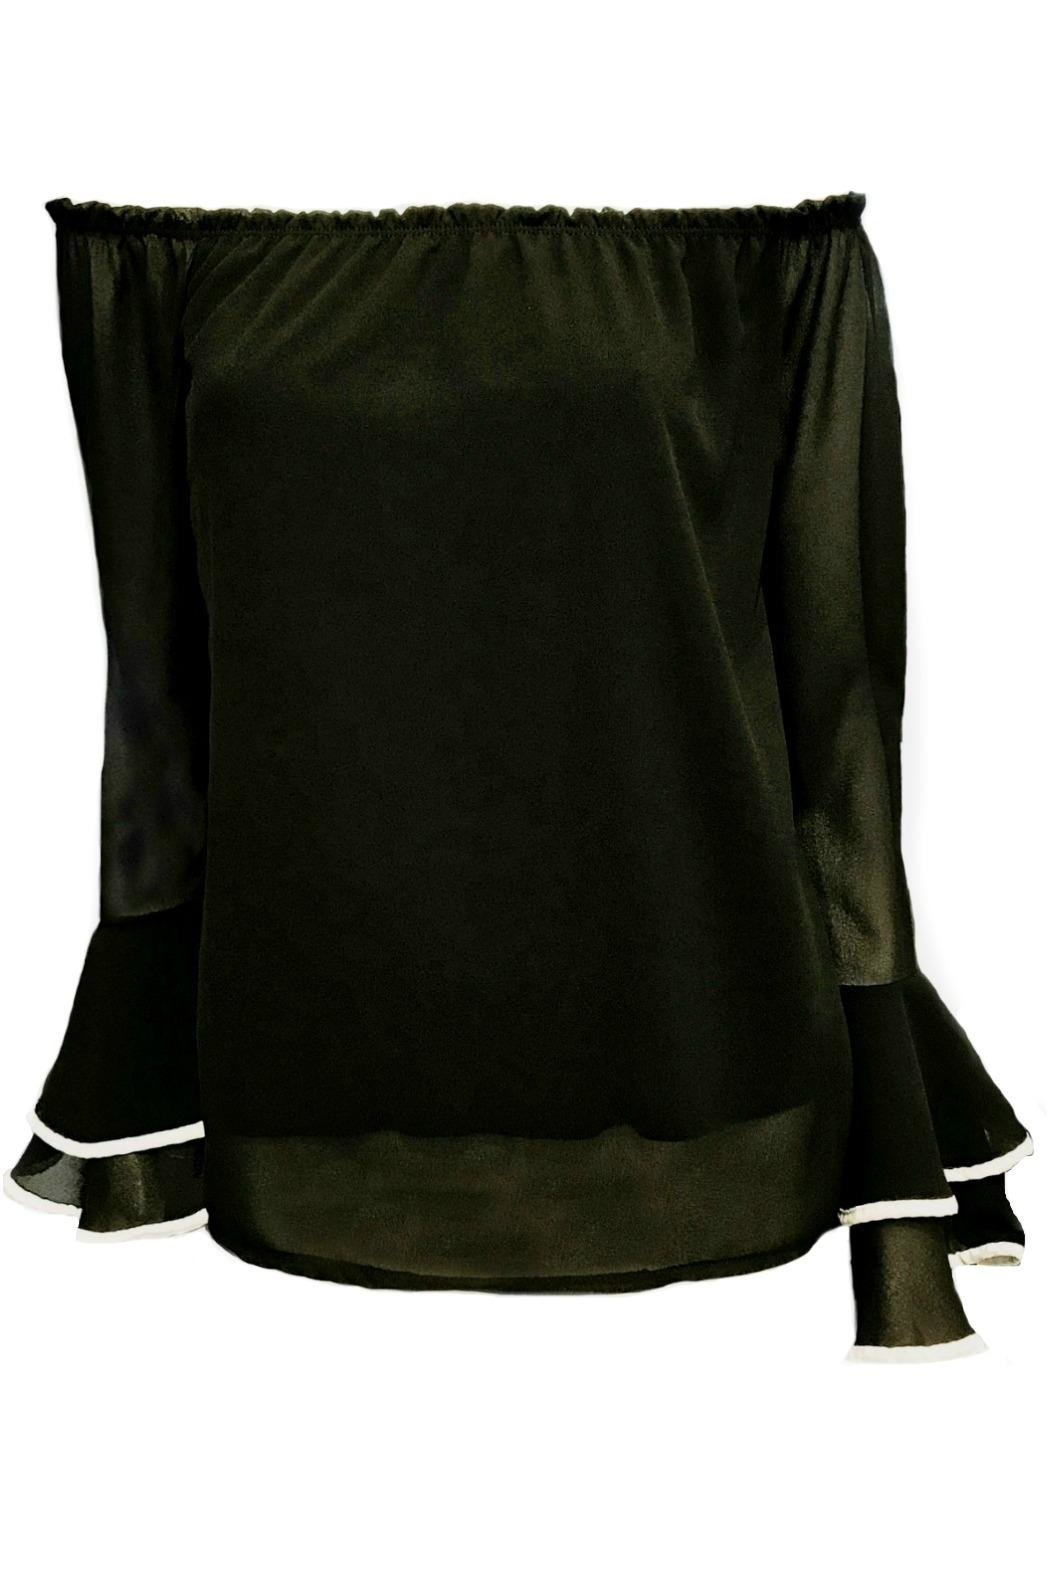 ANTONELLO SERIO Ots Peasant Blouse - Front Cropped Image